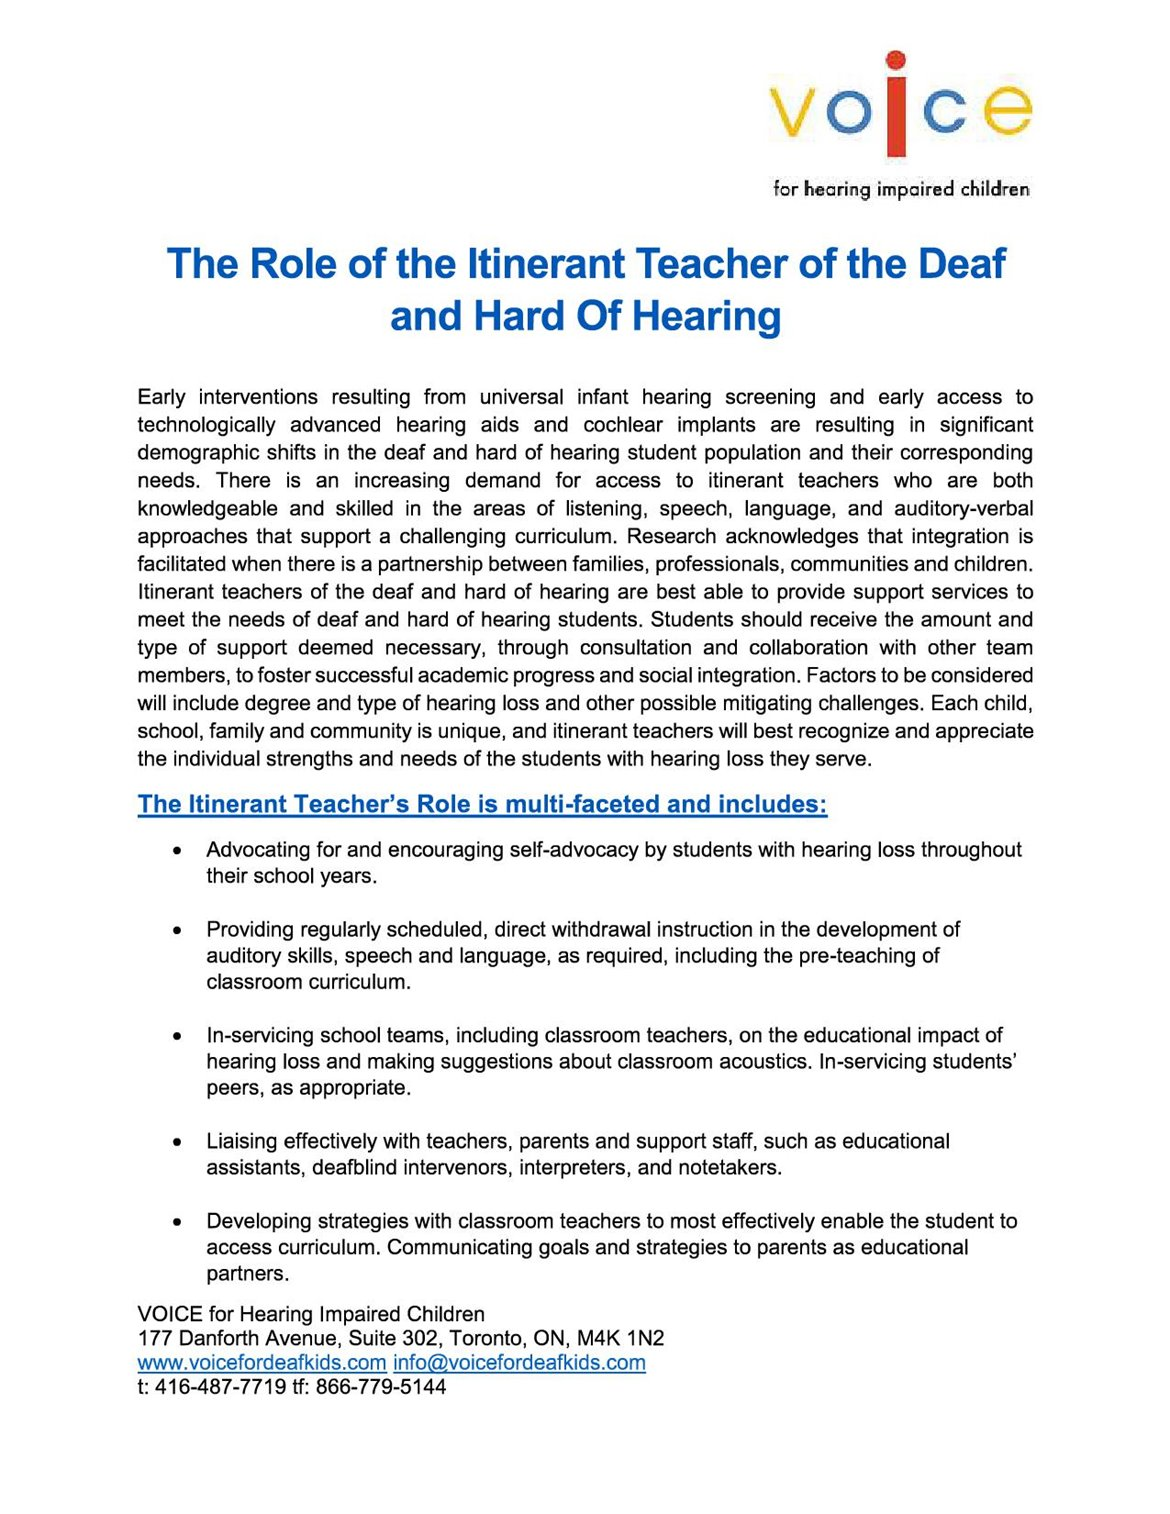 THE-ROLE-OF-THE-ITINERANT-TEACHER.jpg